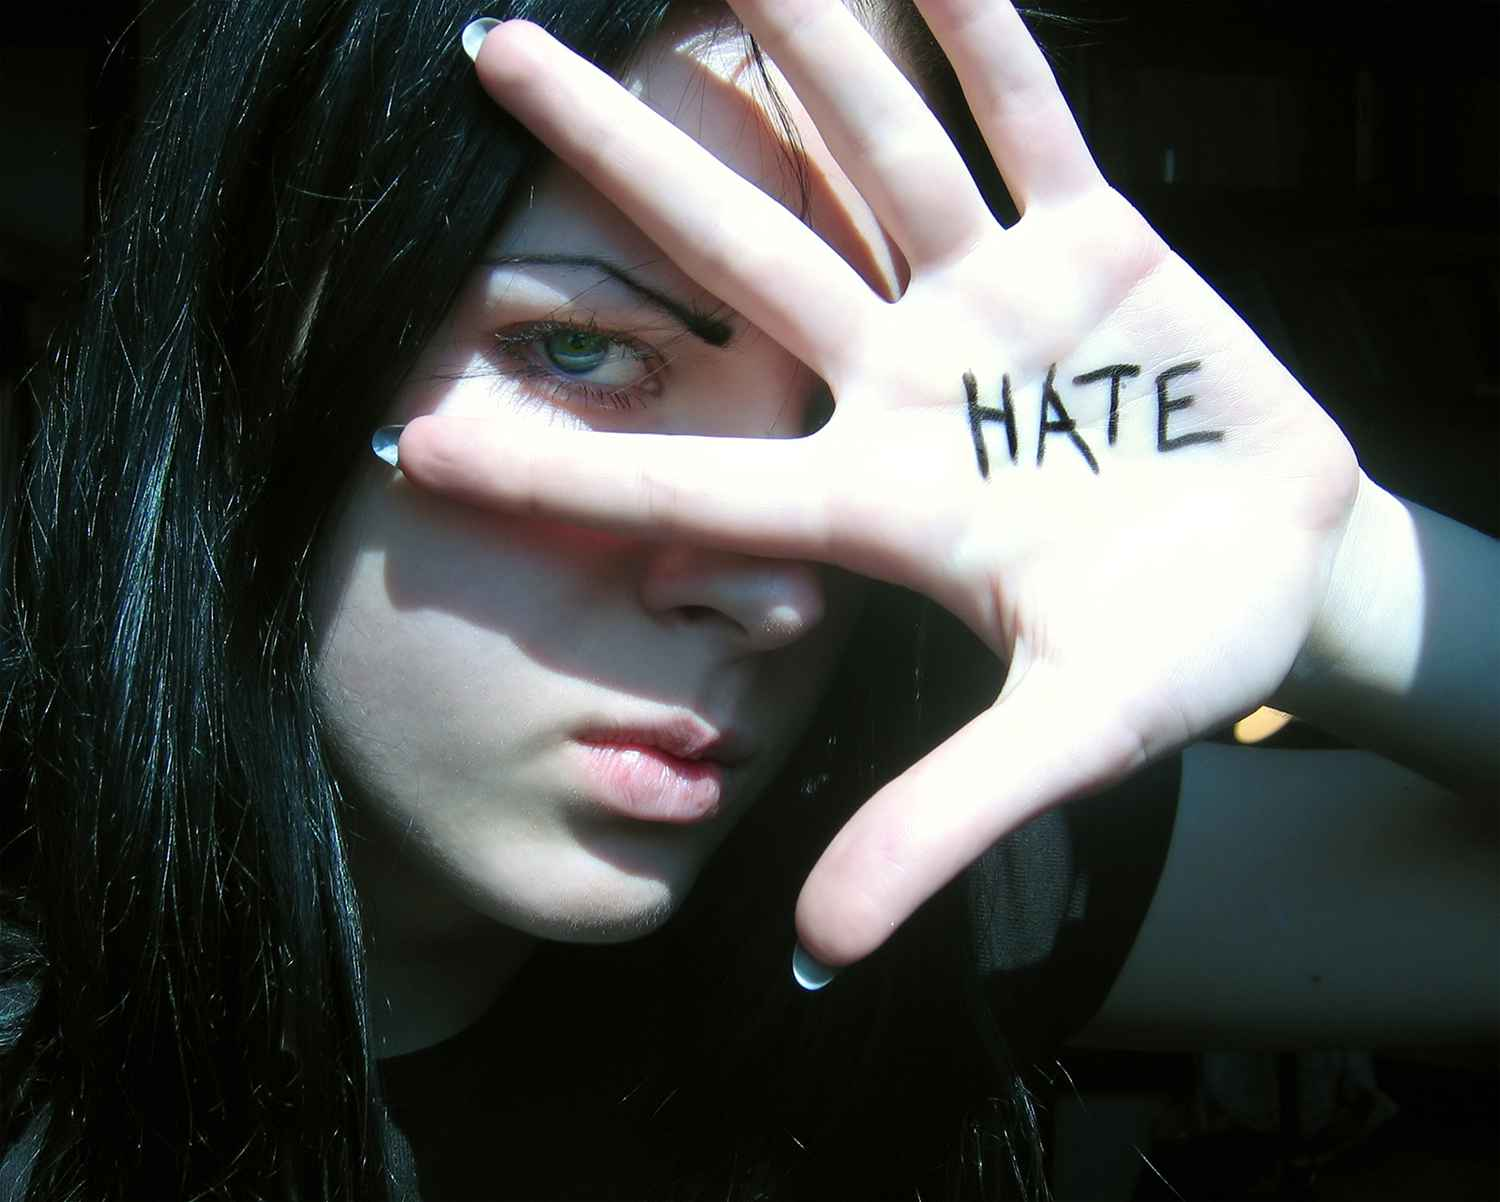 woman with hate written on her hand